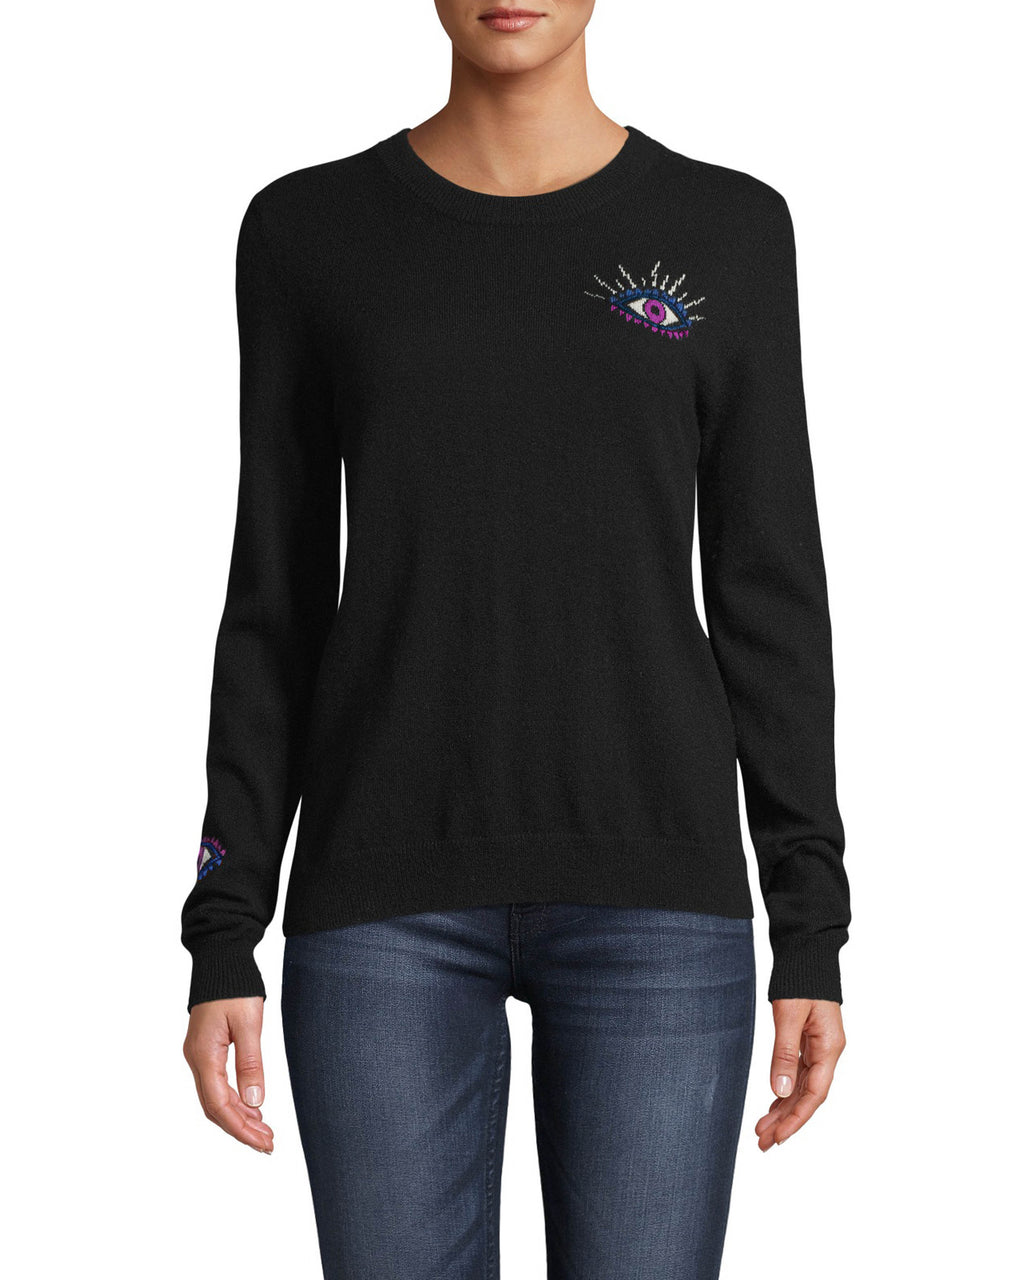 CT18054 - CASHMERE CREW NECK EVIL EYE SWEATER - tops - knitwear - This 100% cashmere sweater features our beloved evil eye motif on the front, back and sleeve. Designed in a classic crew neck silhouette. Add 1 line break Stylist tip: Wear with denim for a casual but cool outfit.